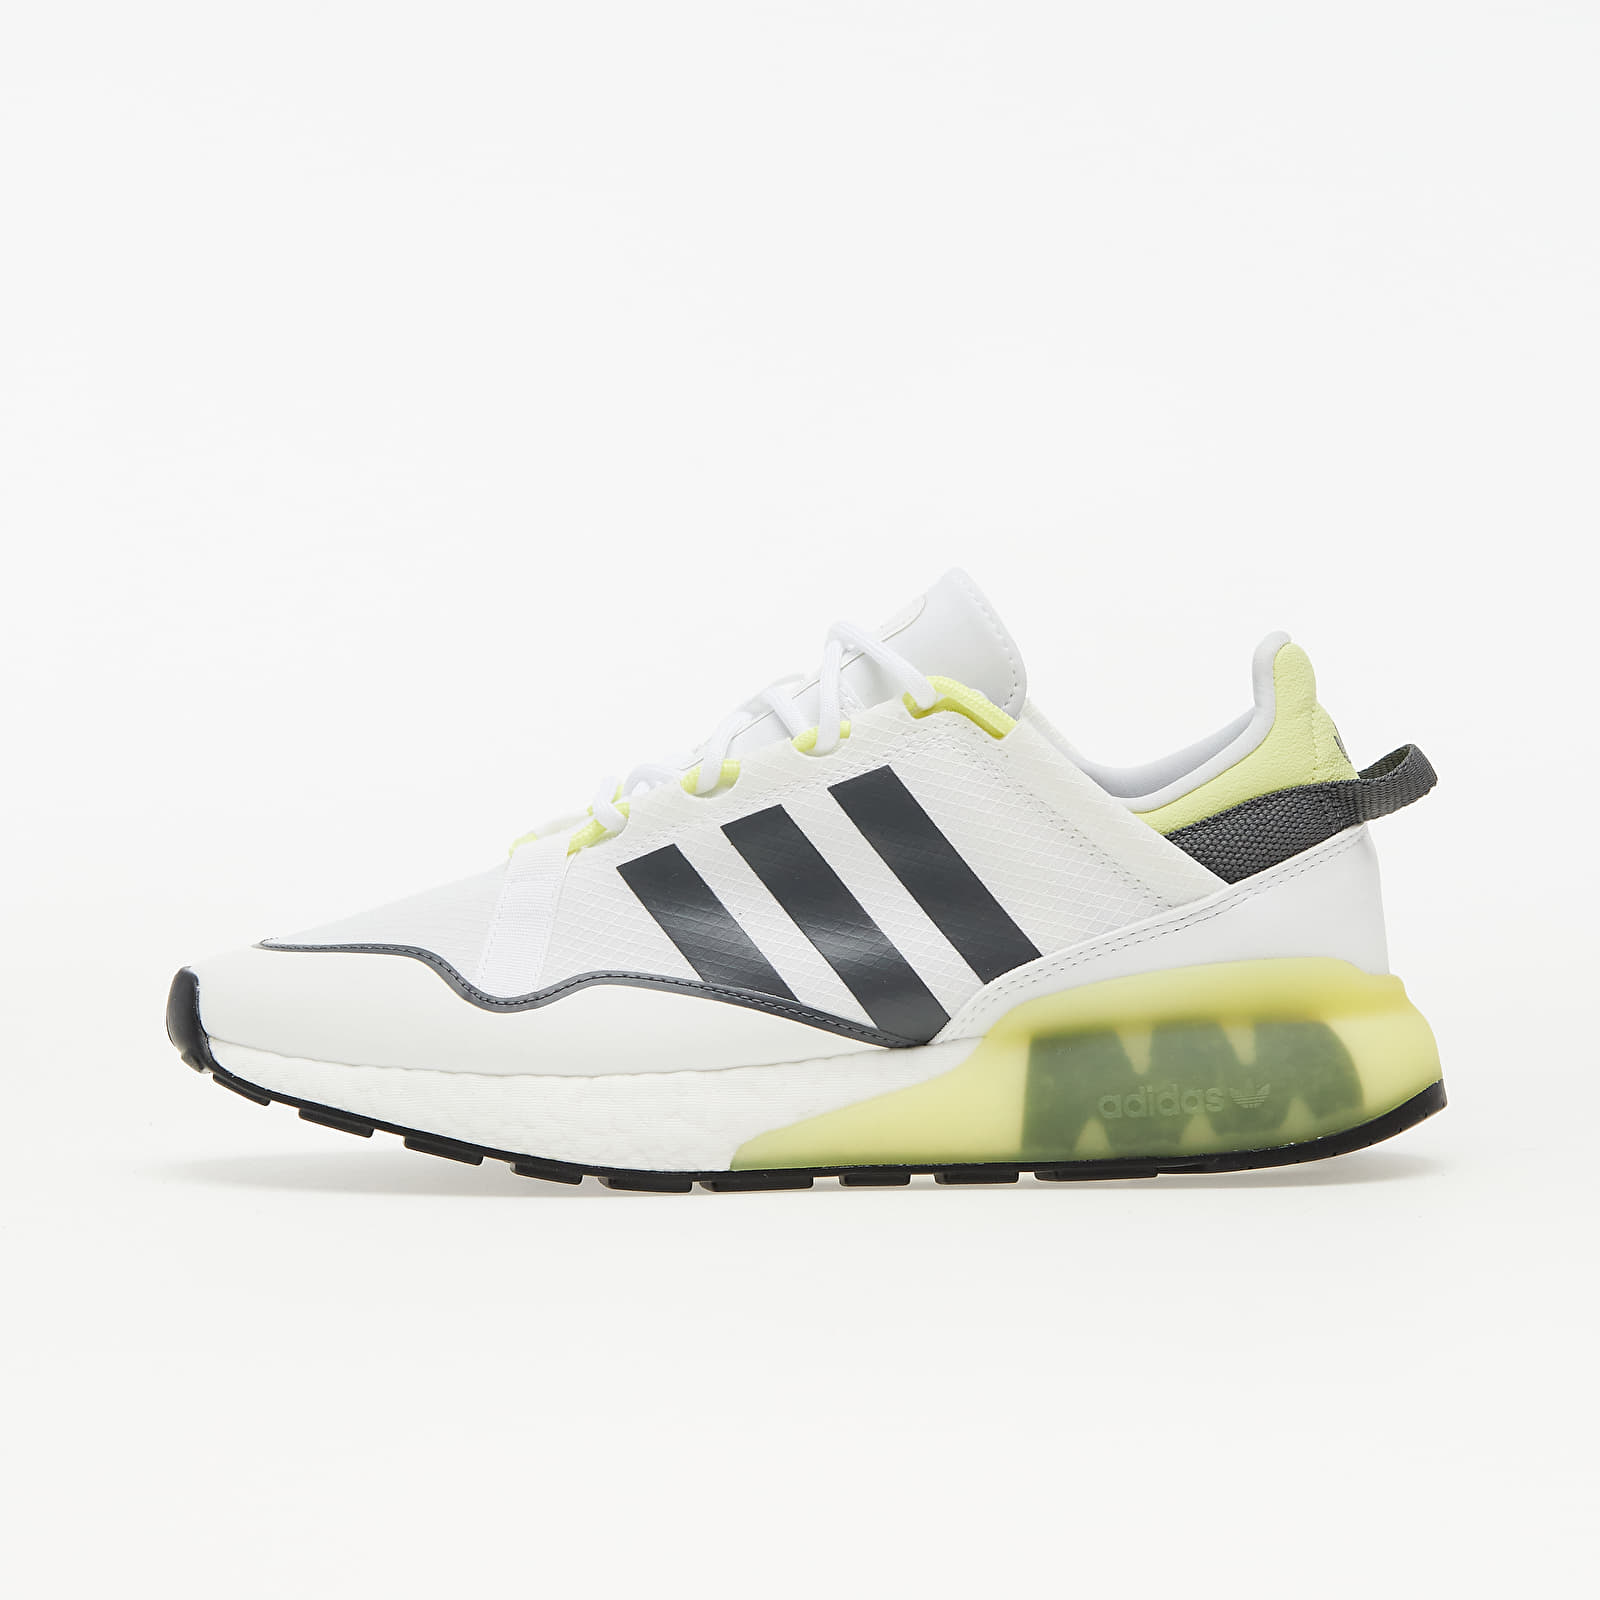 adidas ZX 2K Boost Pure Ftw White/ Grey Five/ Purple Yellow EUR 45 1/3